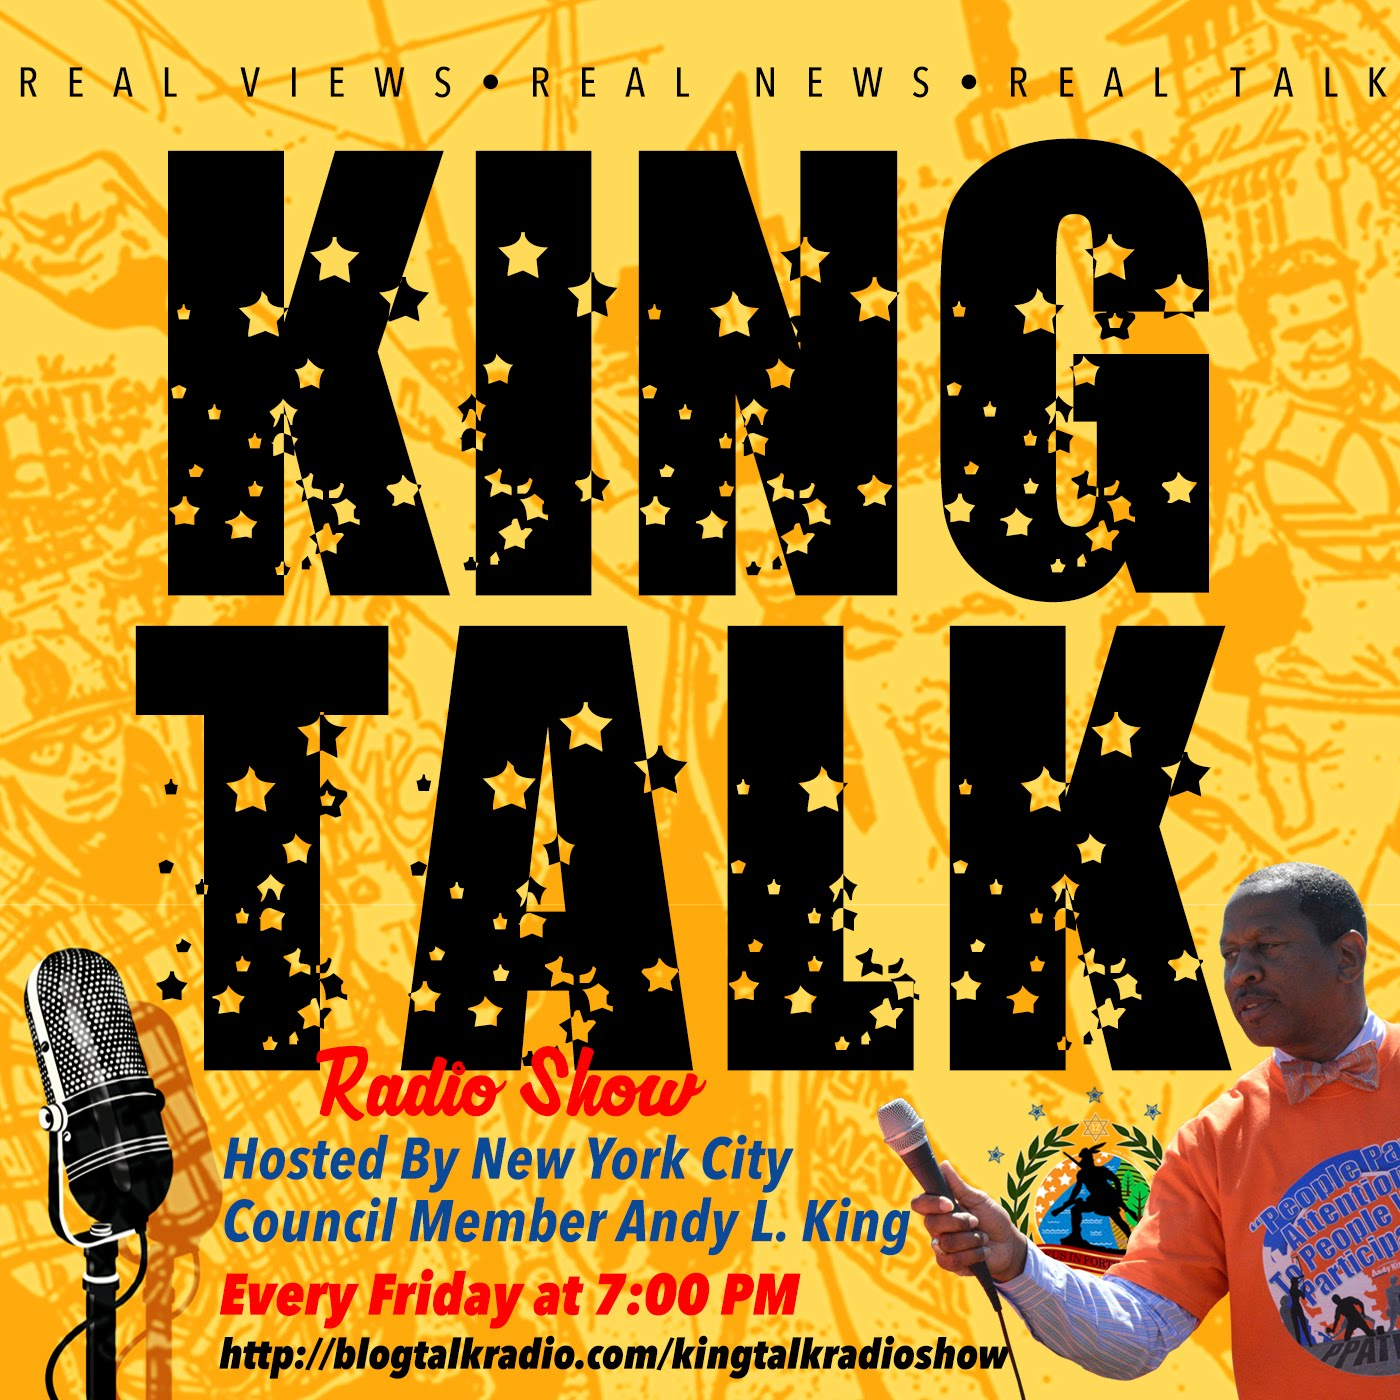 KING TALK RADIO SHOW